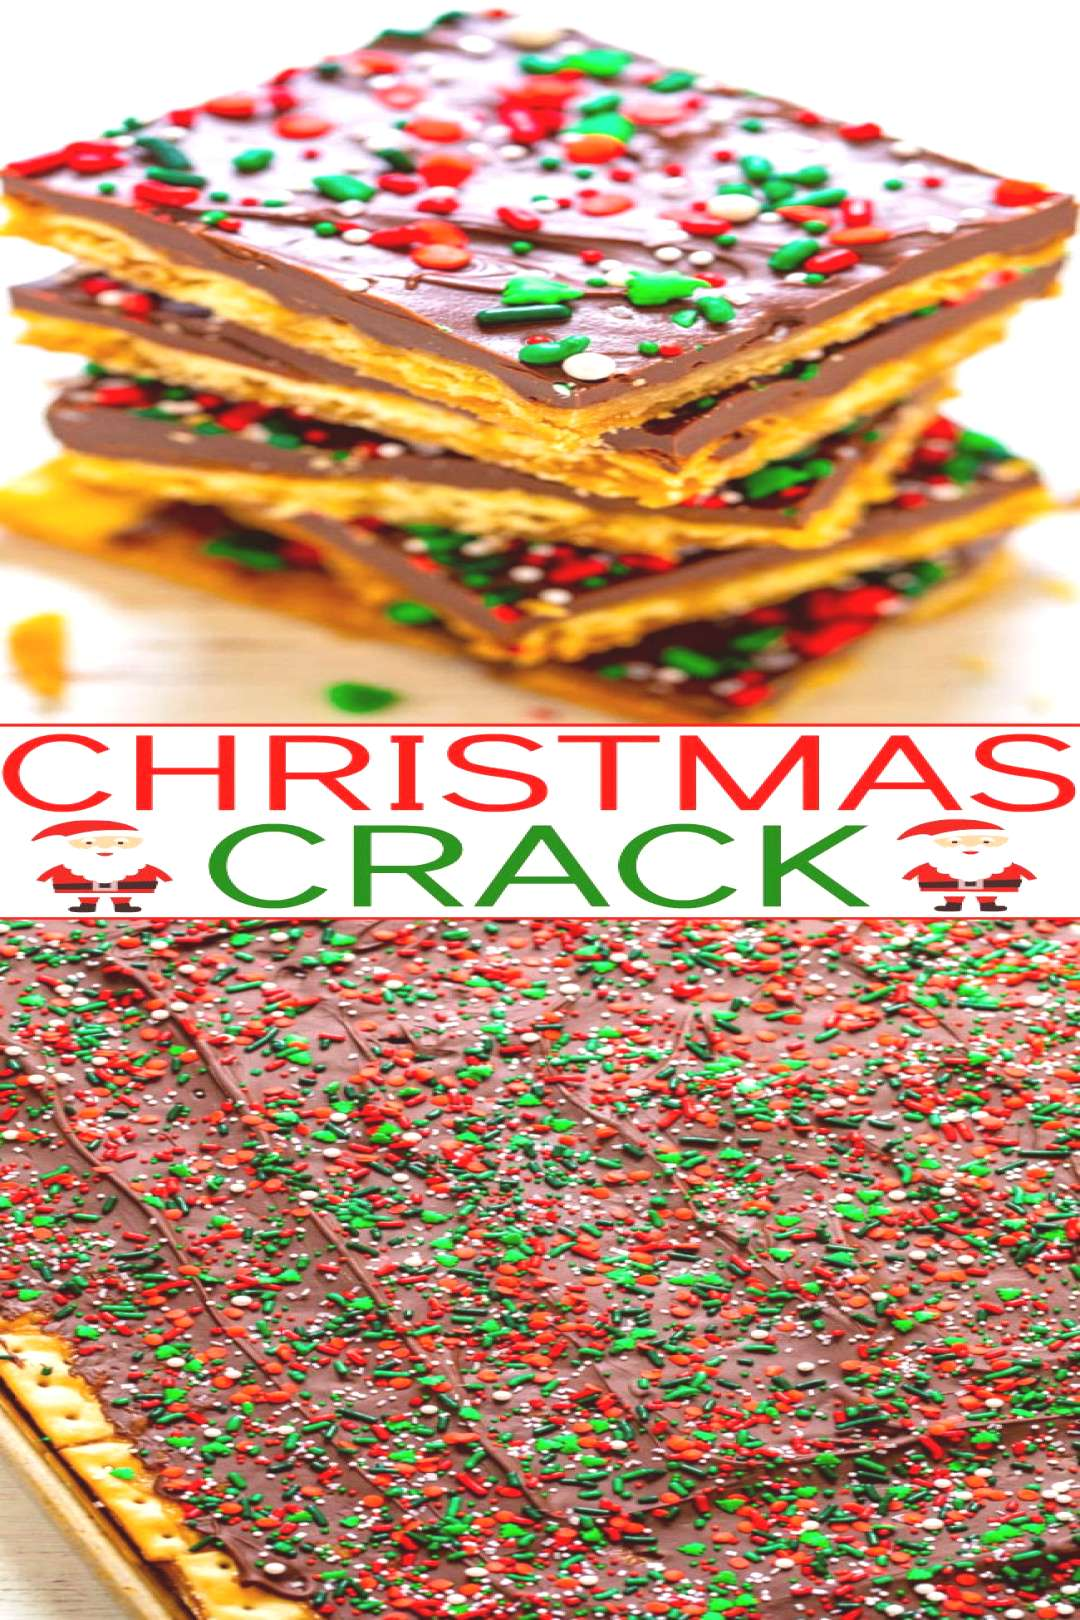 Christmas Crack - A highly addictive, salty-sweet, crunchy, EASY Christmas treat thats IRRESISTIBL